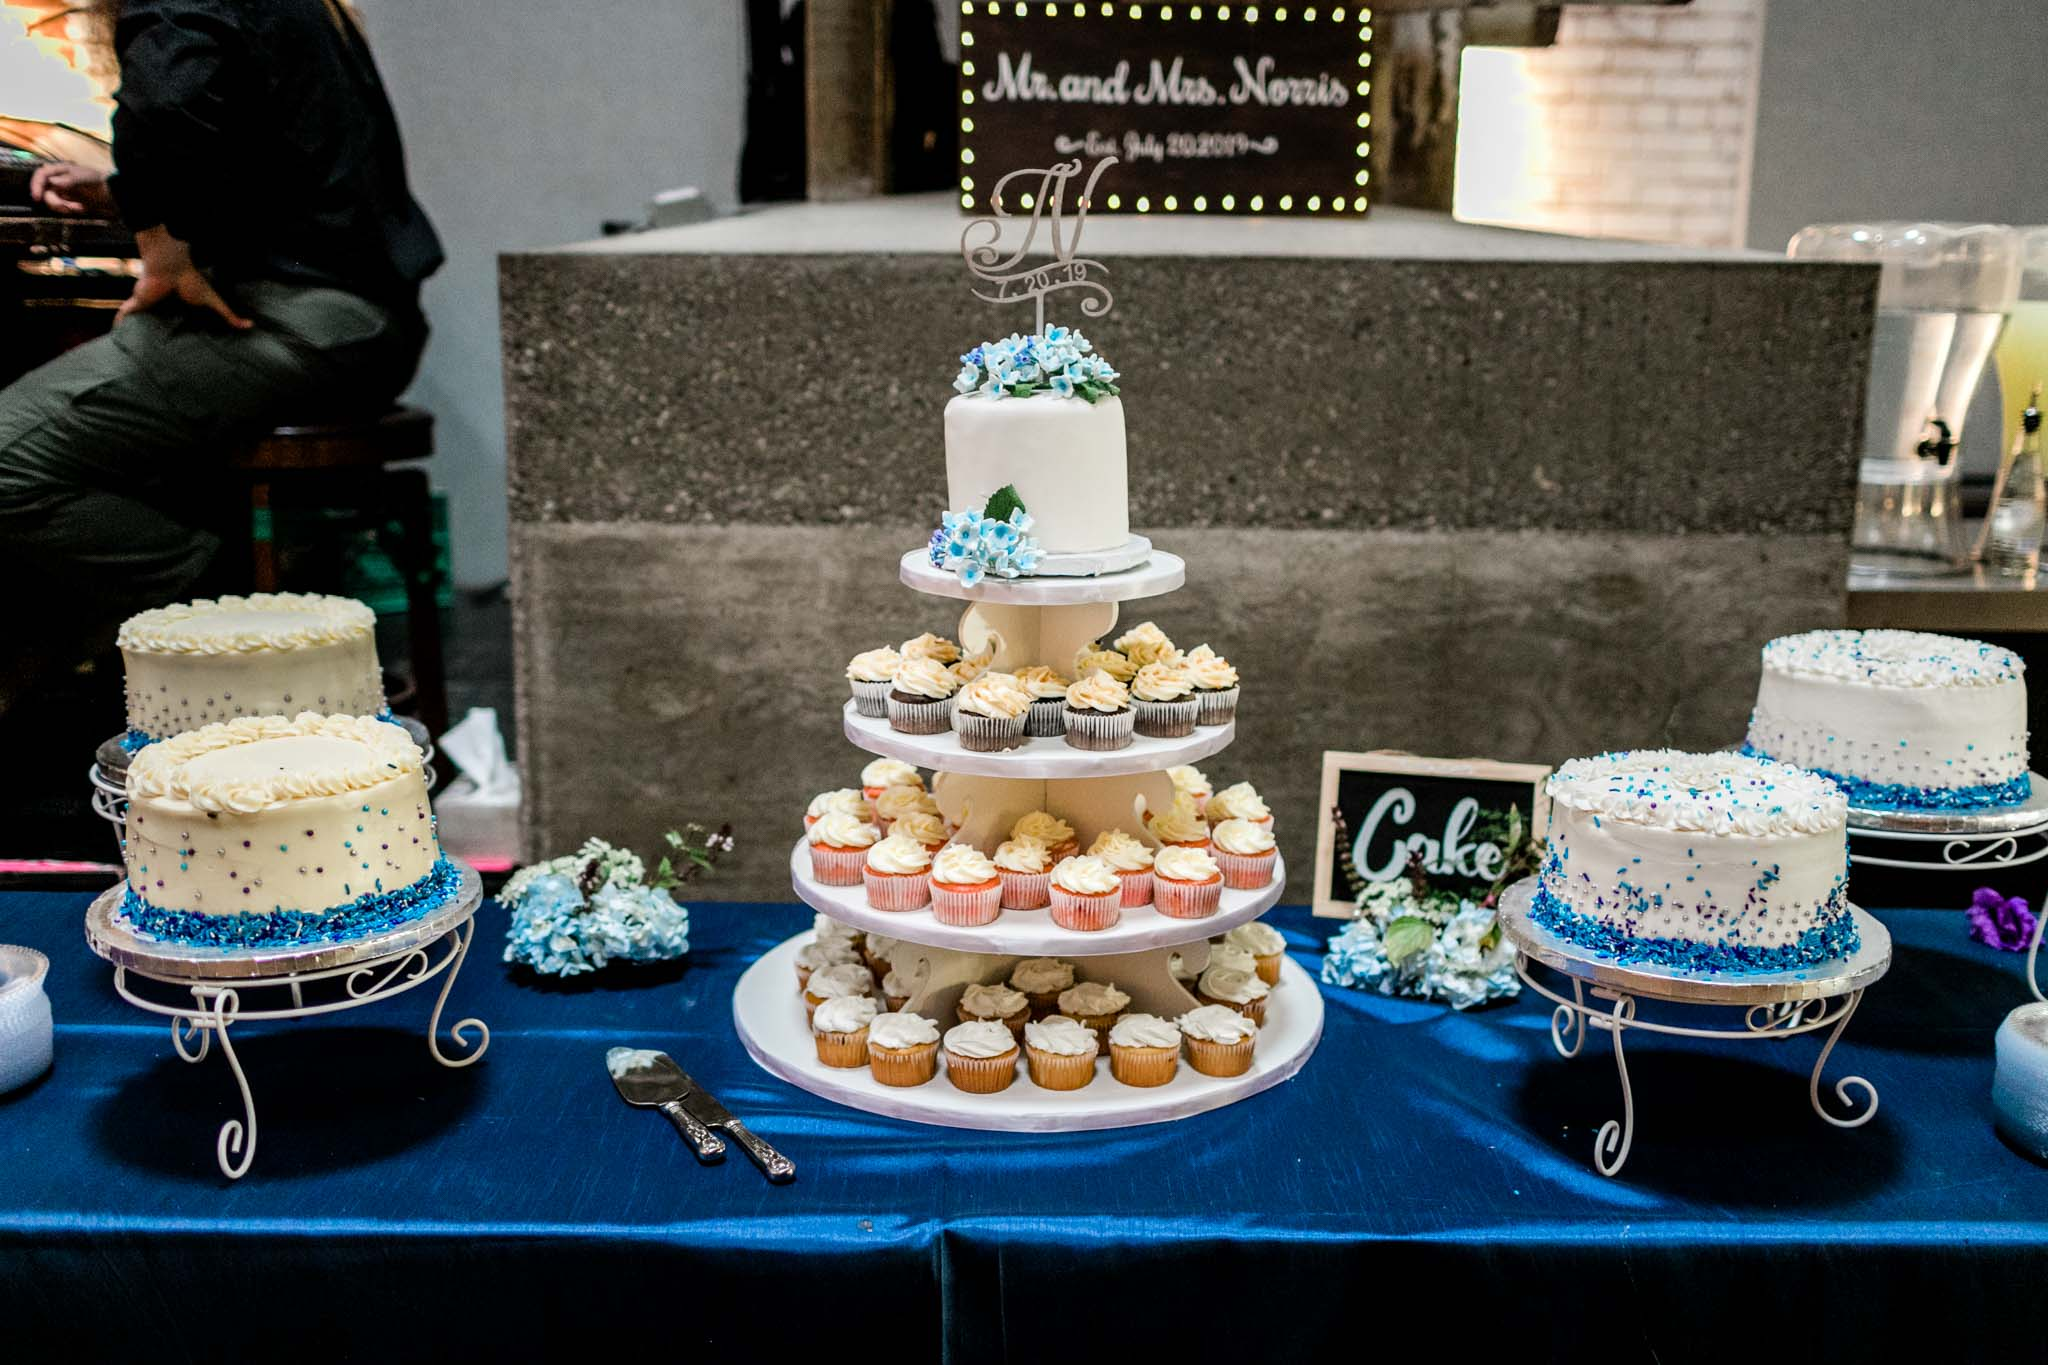 Haw River Ballroom Wedding | Durham Photographer | By G. Lin Photography | Wedding cupcakes and cakes on table